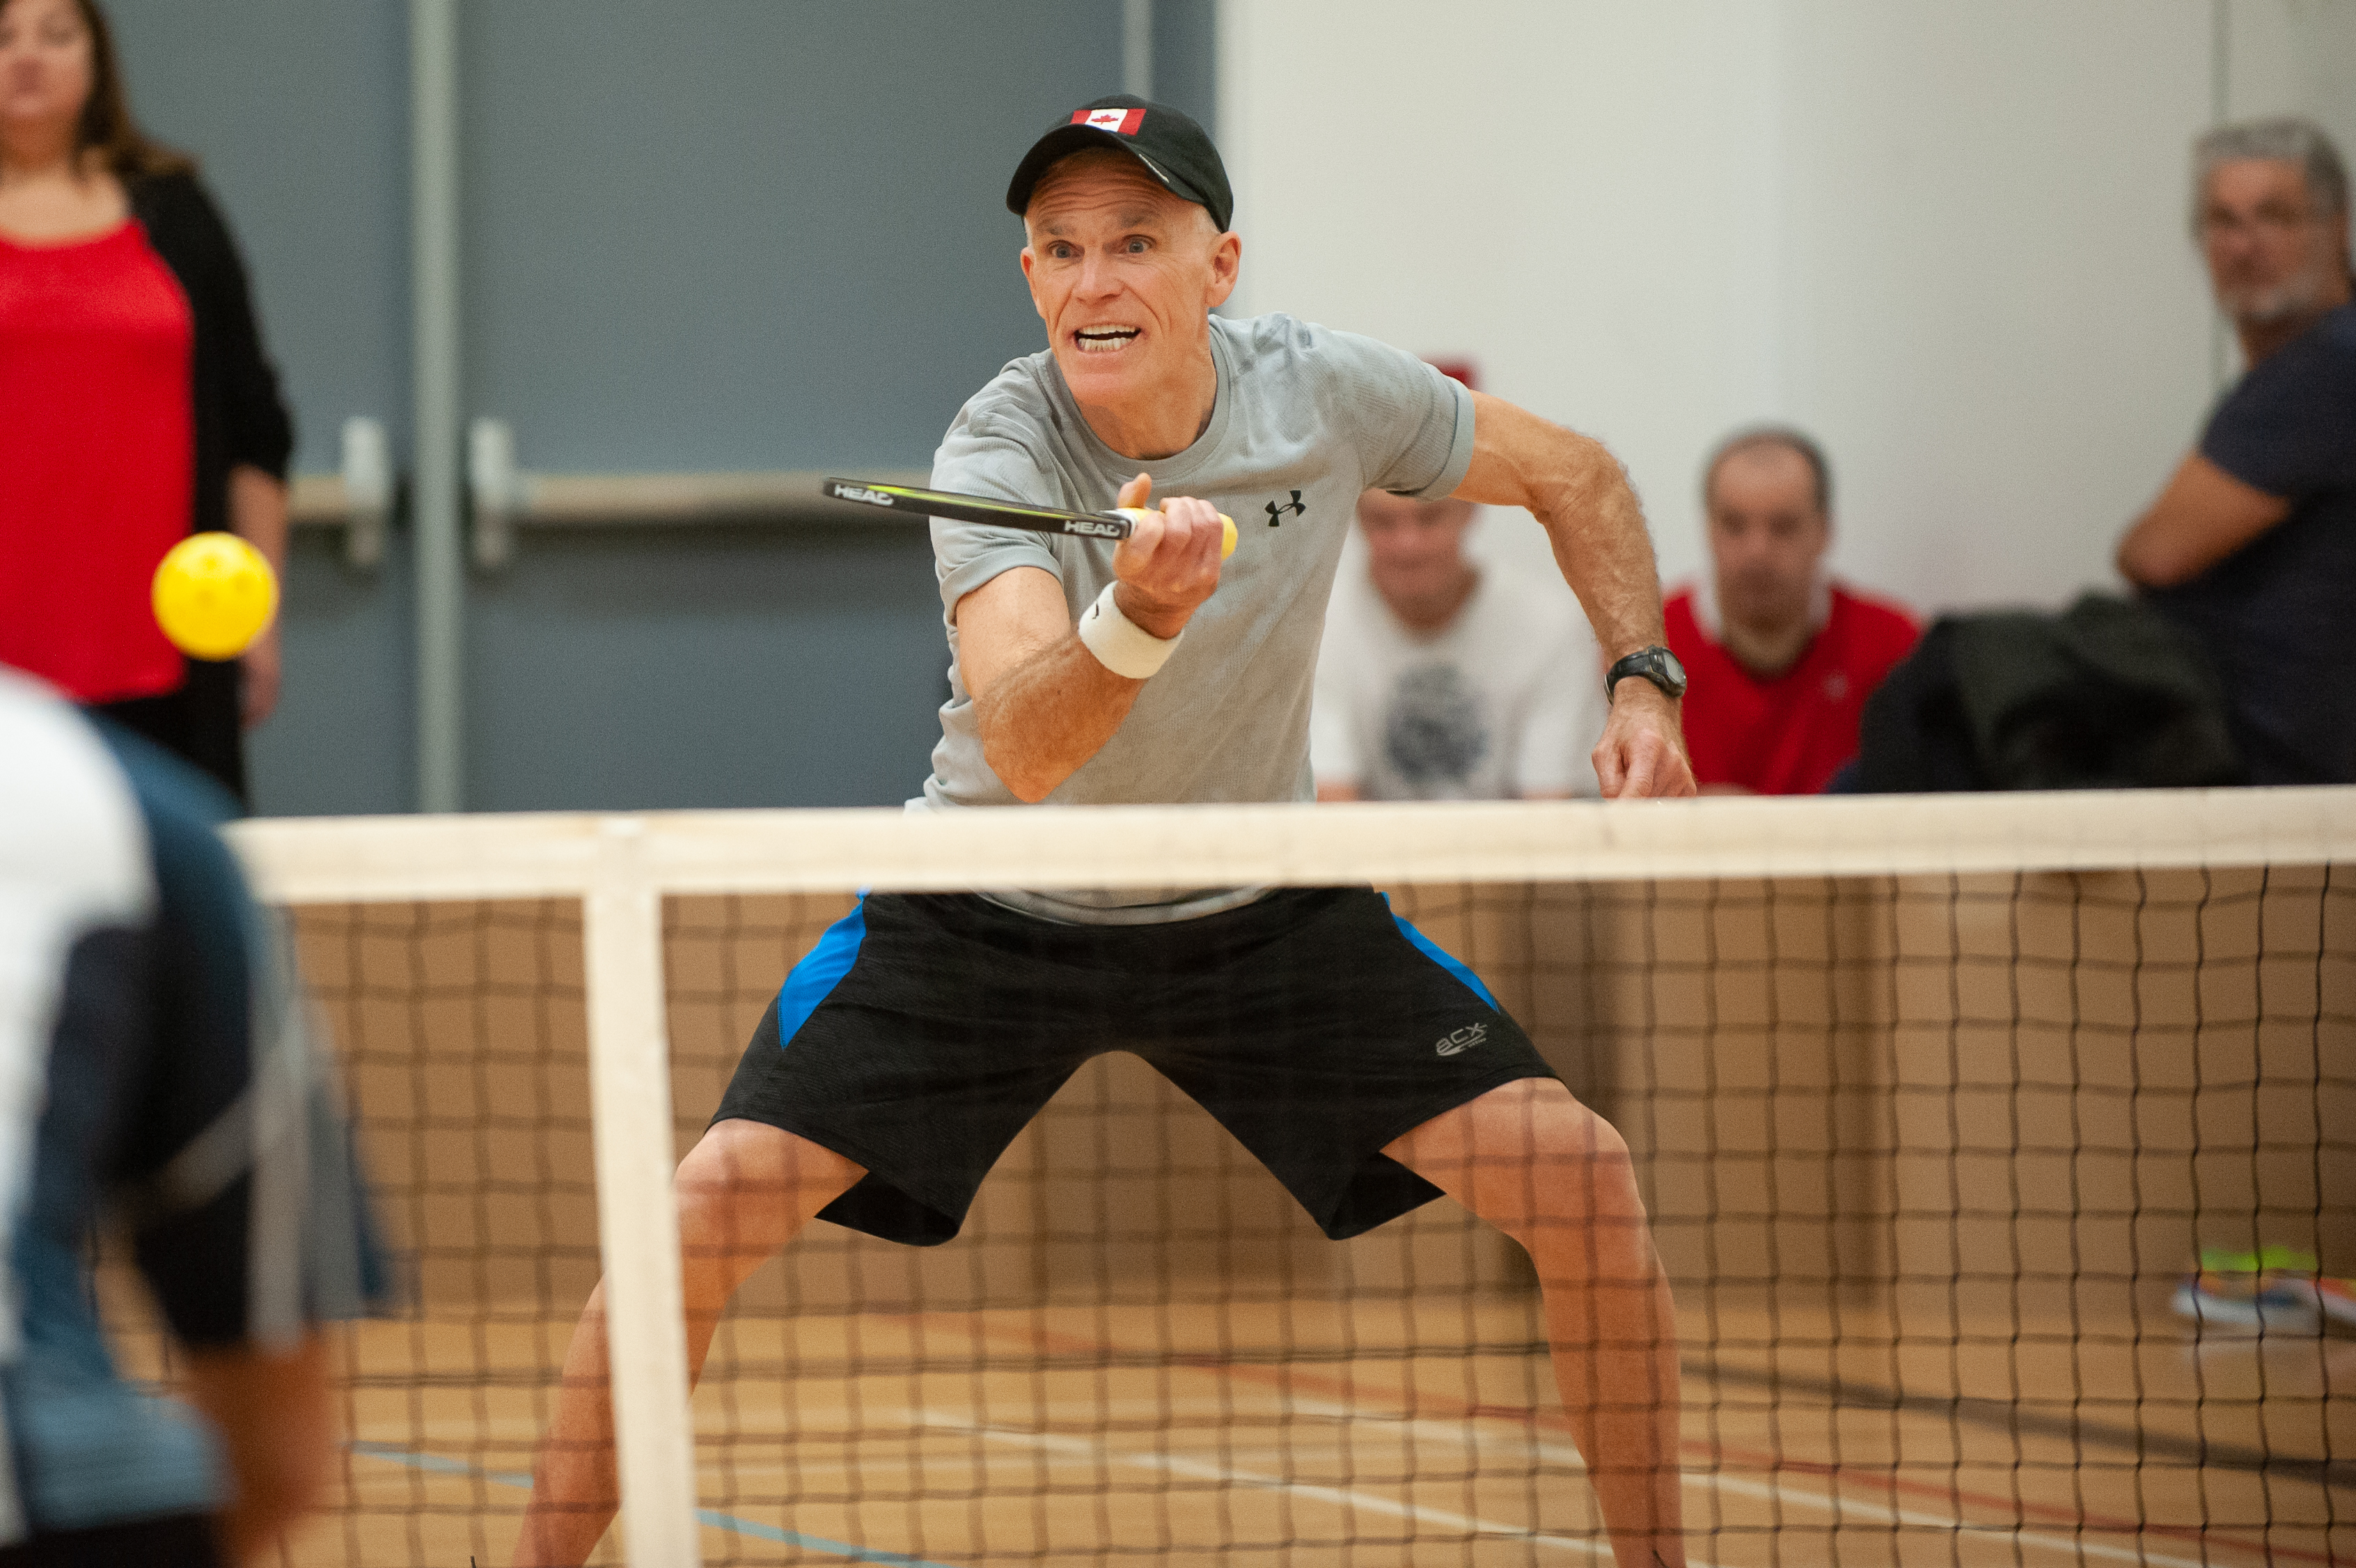 Photo of a man playing Pickleball.